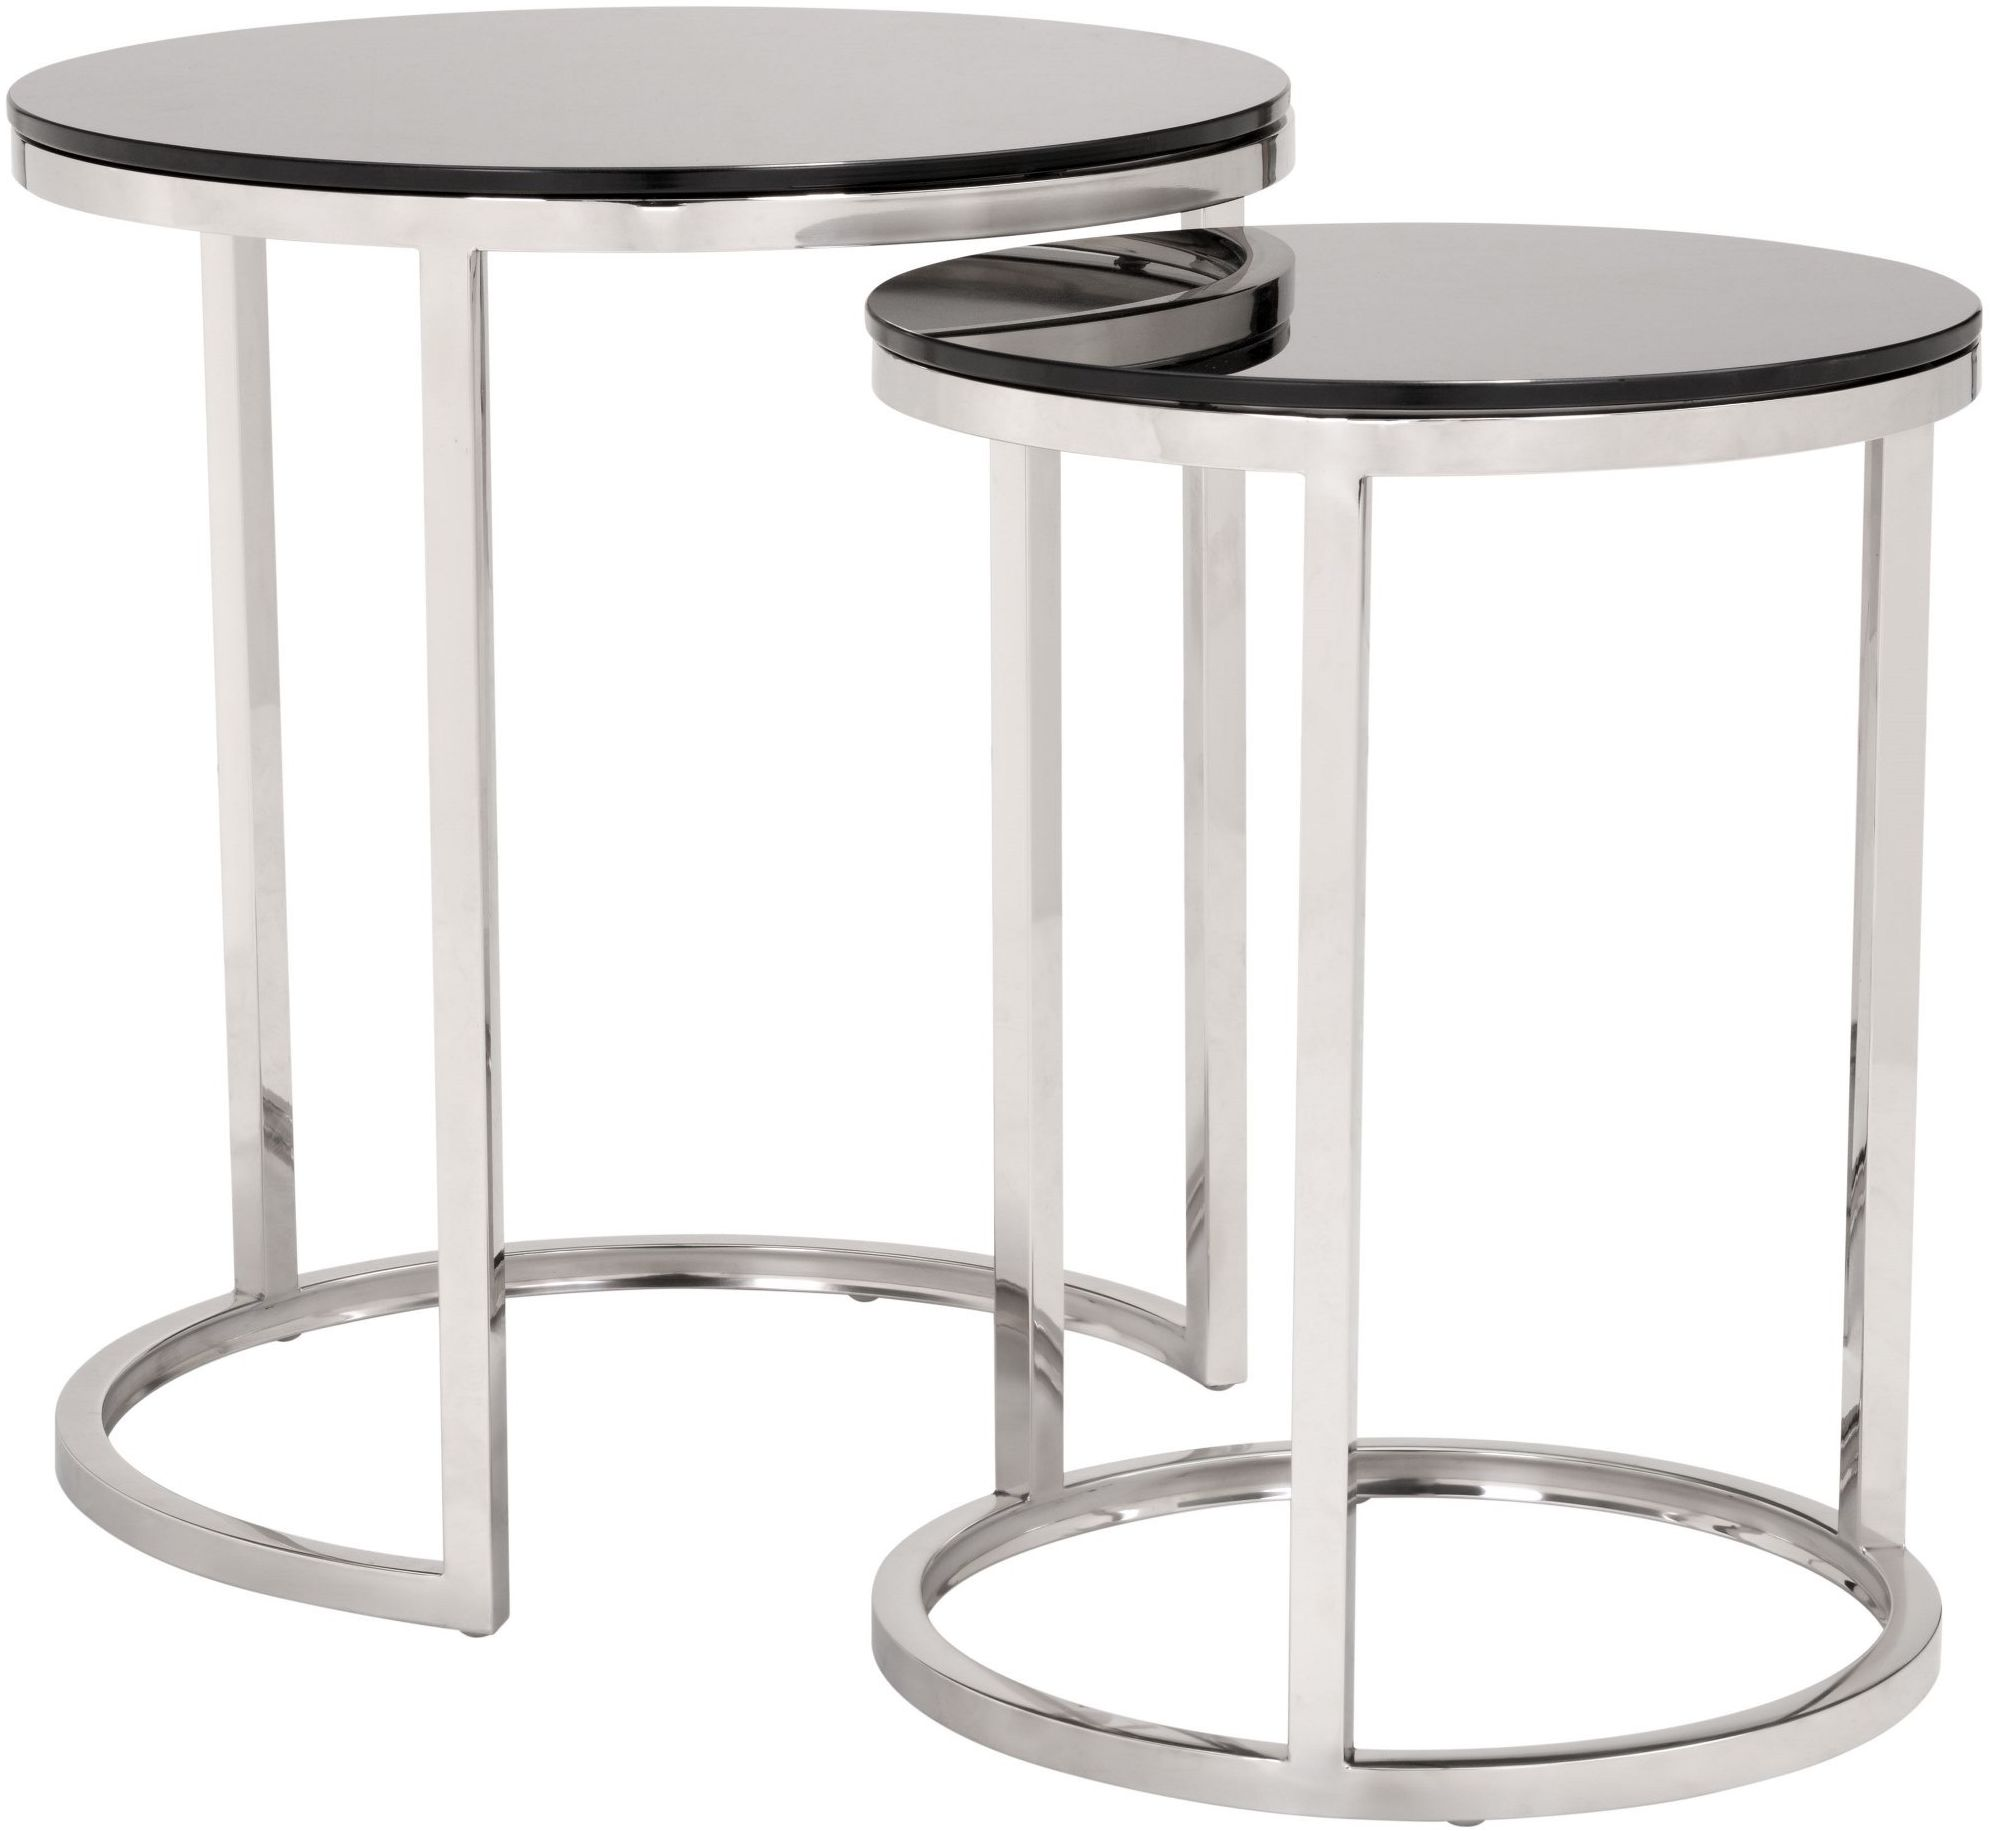 Stainless Steel Coffee Table: Zuo Modern Rem Black And Stainless Steel Coffee Table